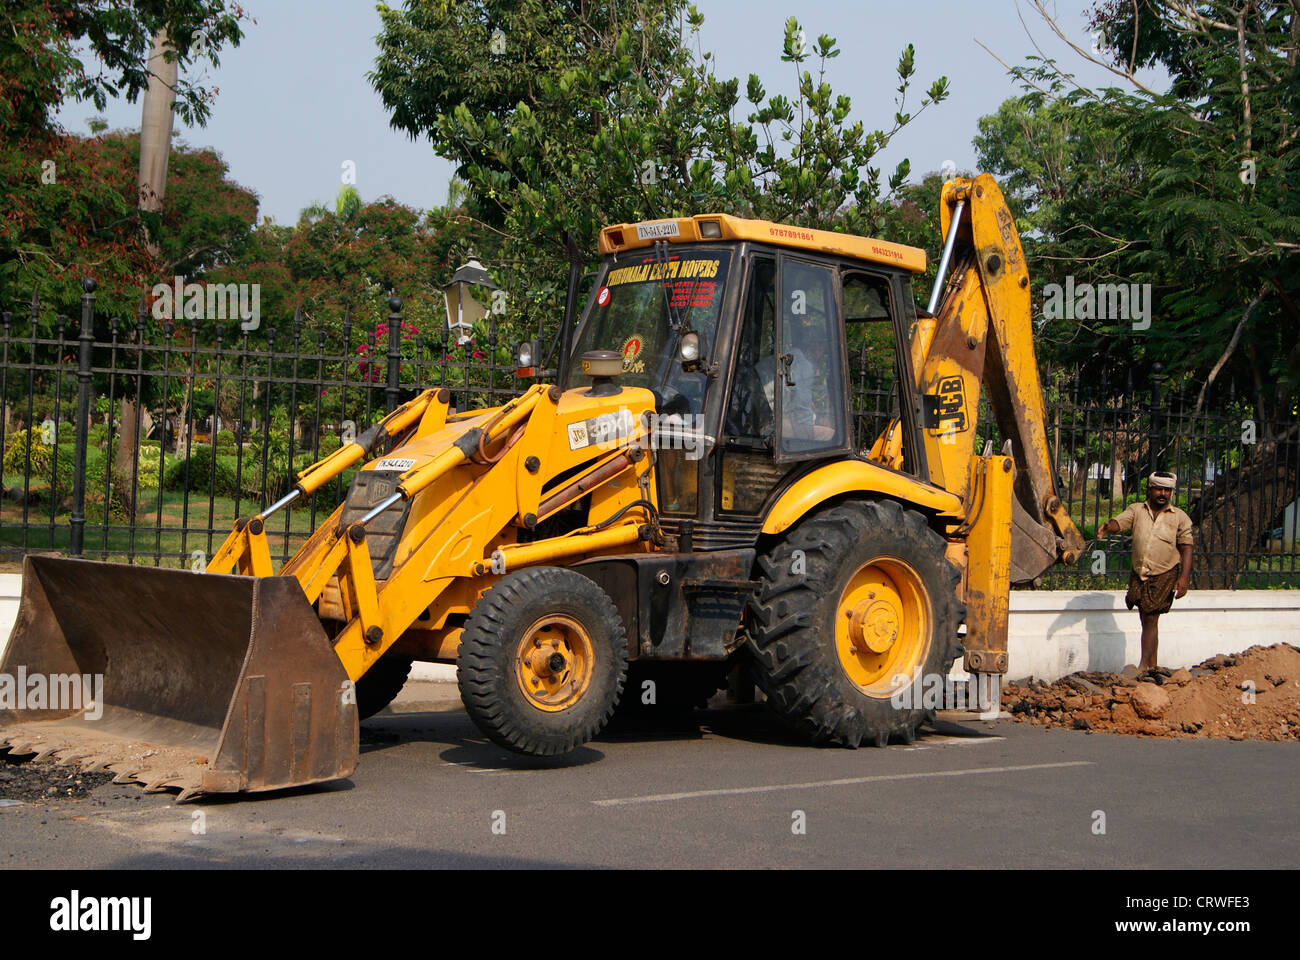 JCB Earth mover Digging the Tarred Road for underlying Pipe Maintenance Work at Pondicherry (Puducherry) in India - Stock Image